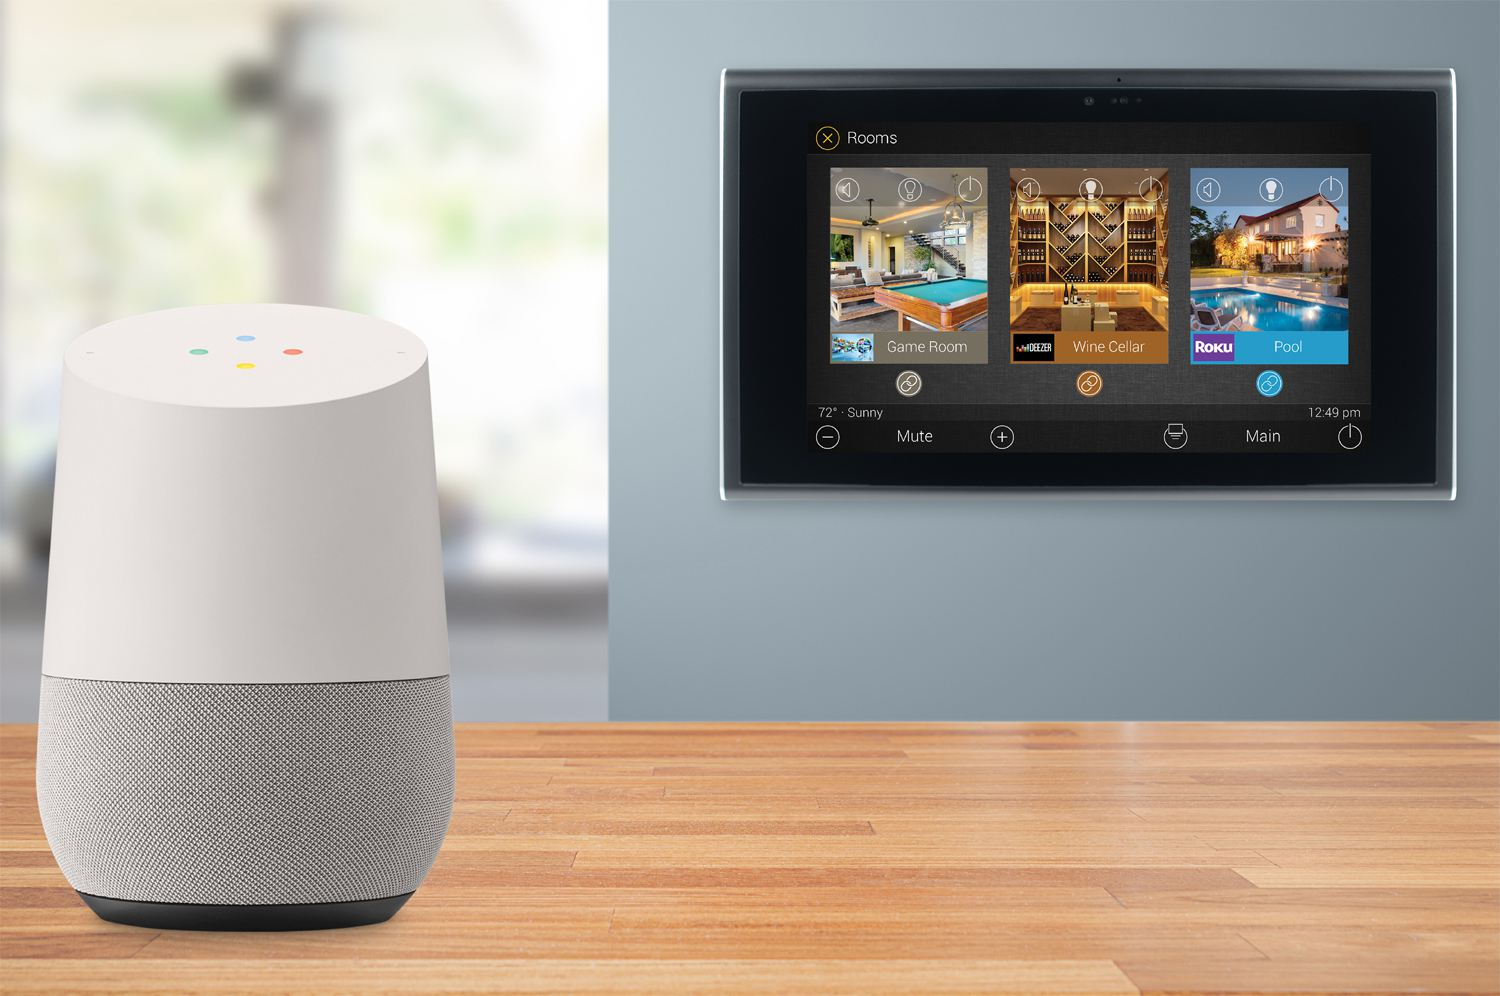 How To Connect Google Home To Your TV